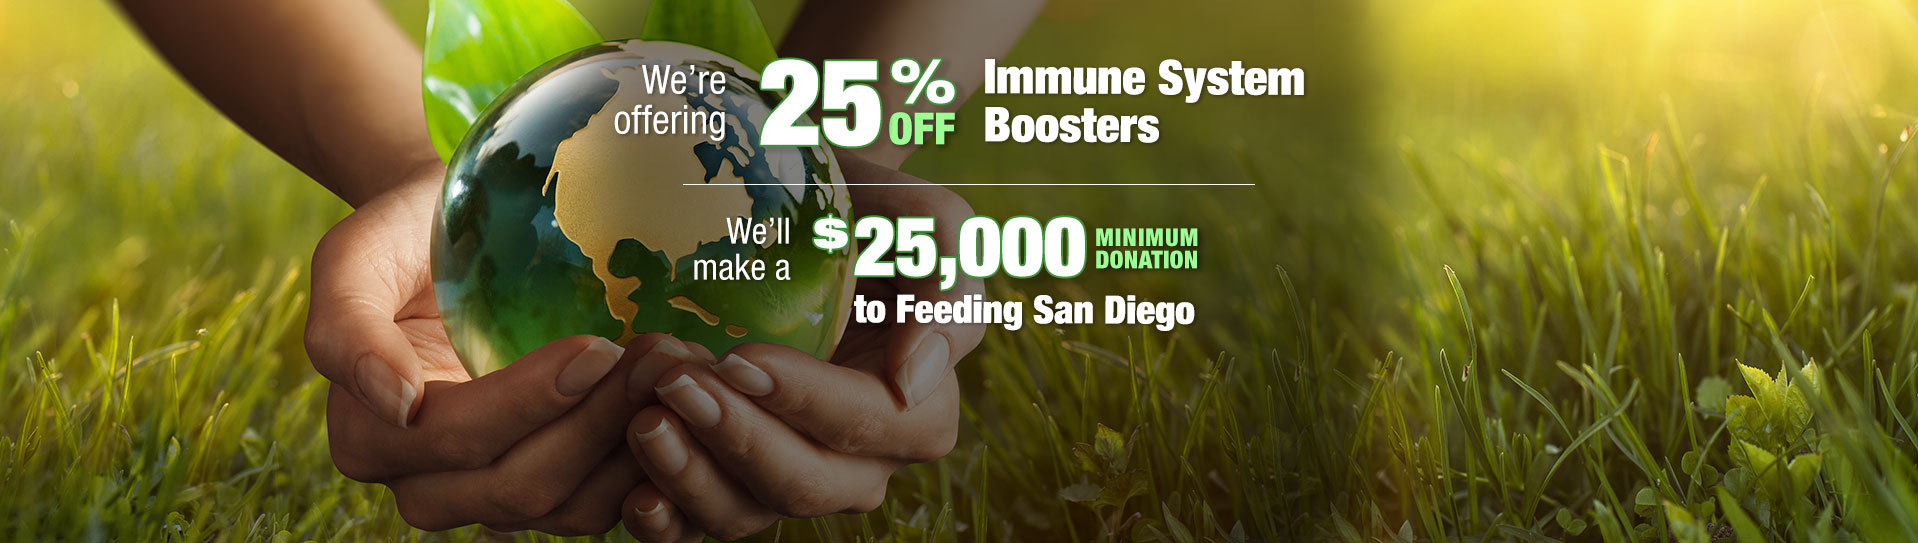 Promo Immune System Booster